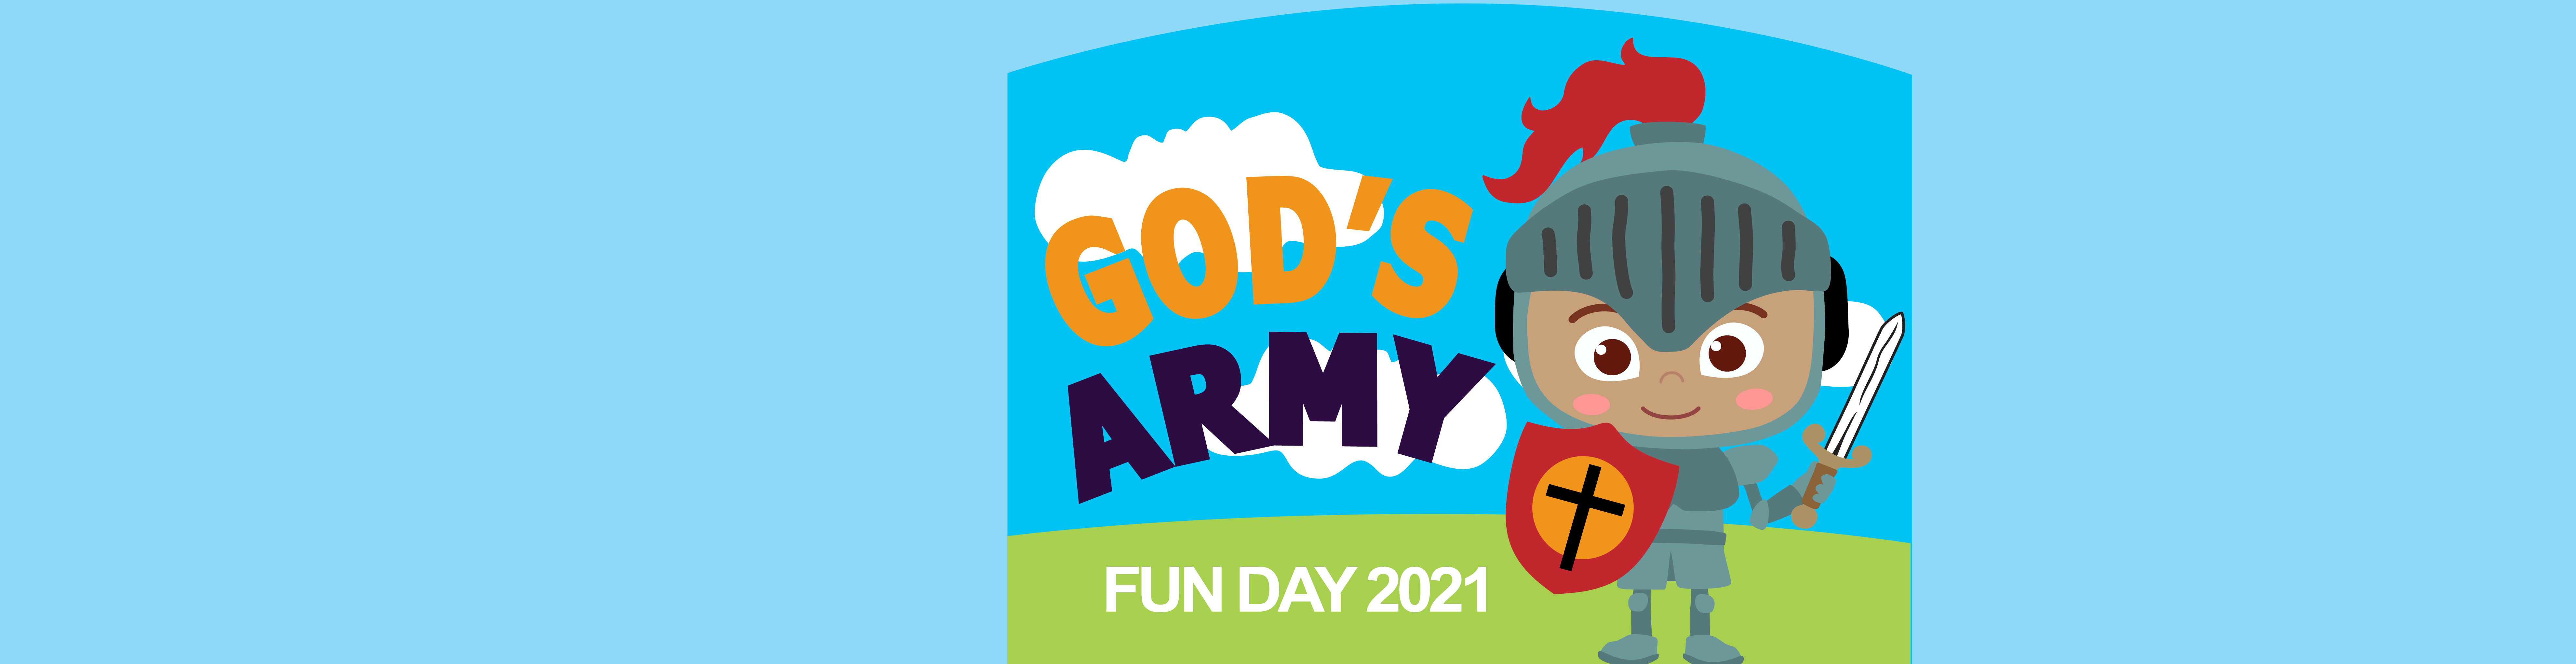 2021 FUN DAY Web Banner